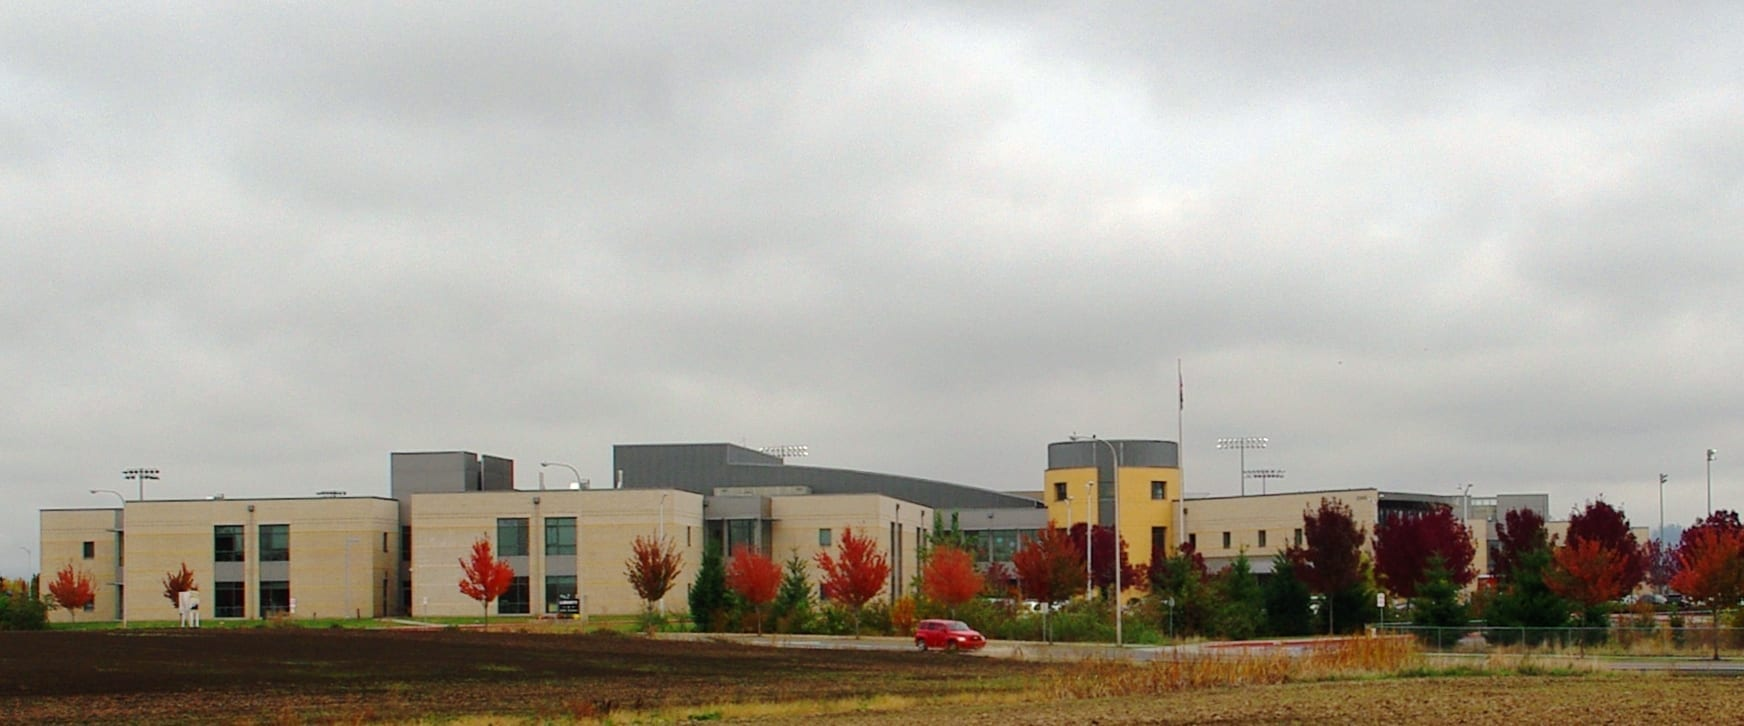 Image of Liberty High School, Hillsboro, Oregon